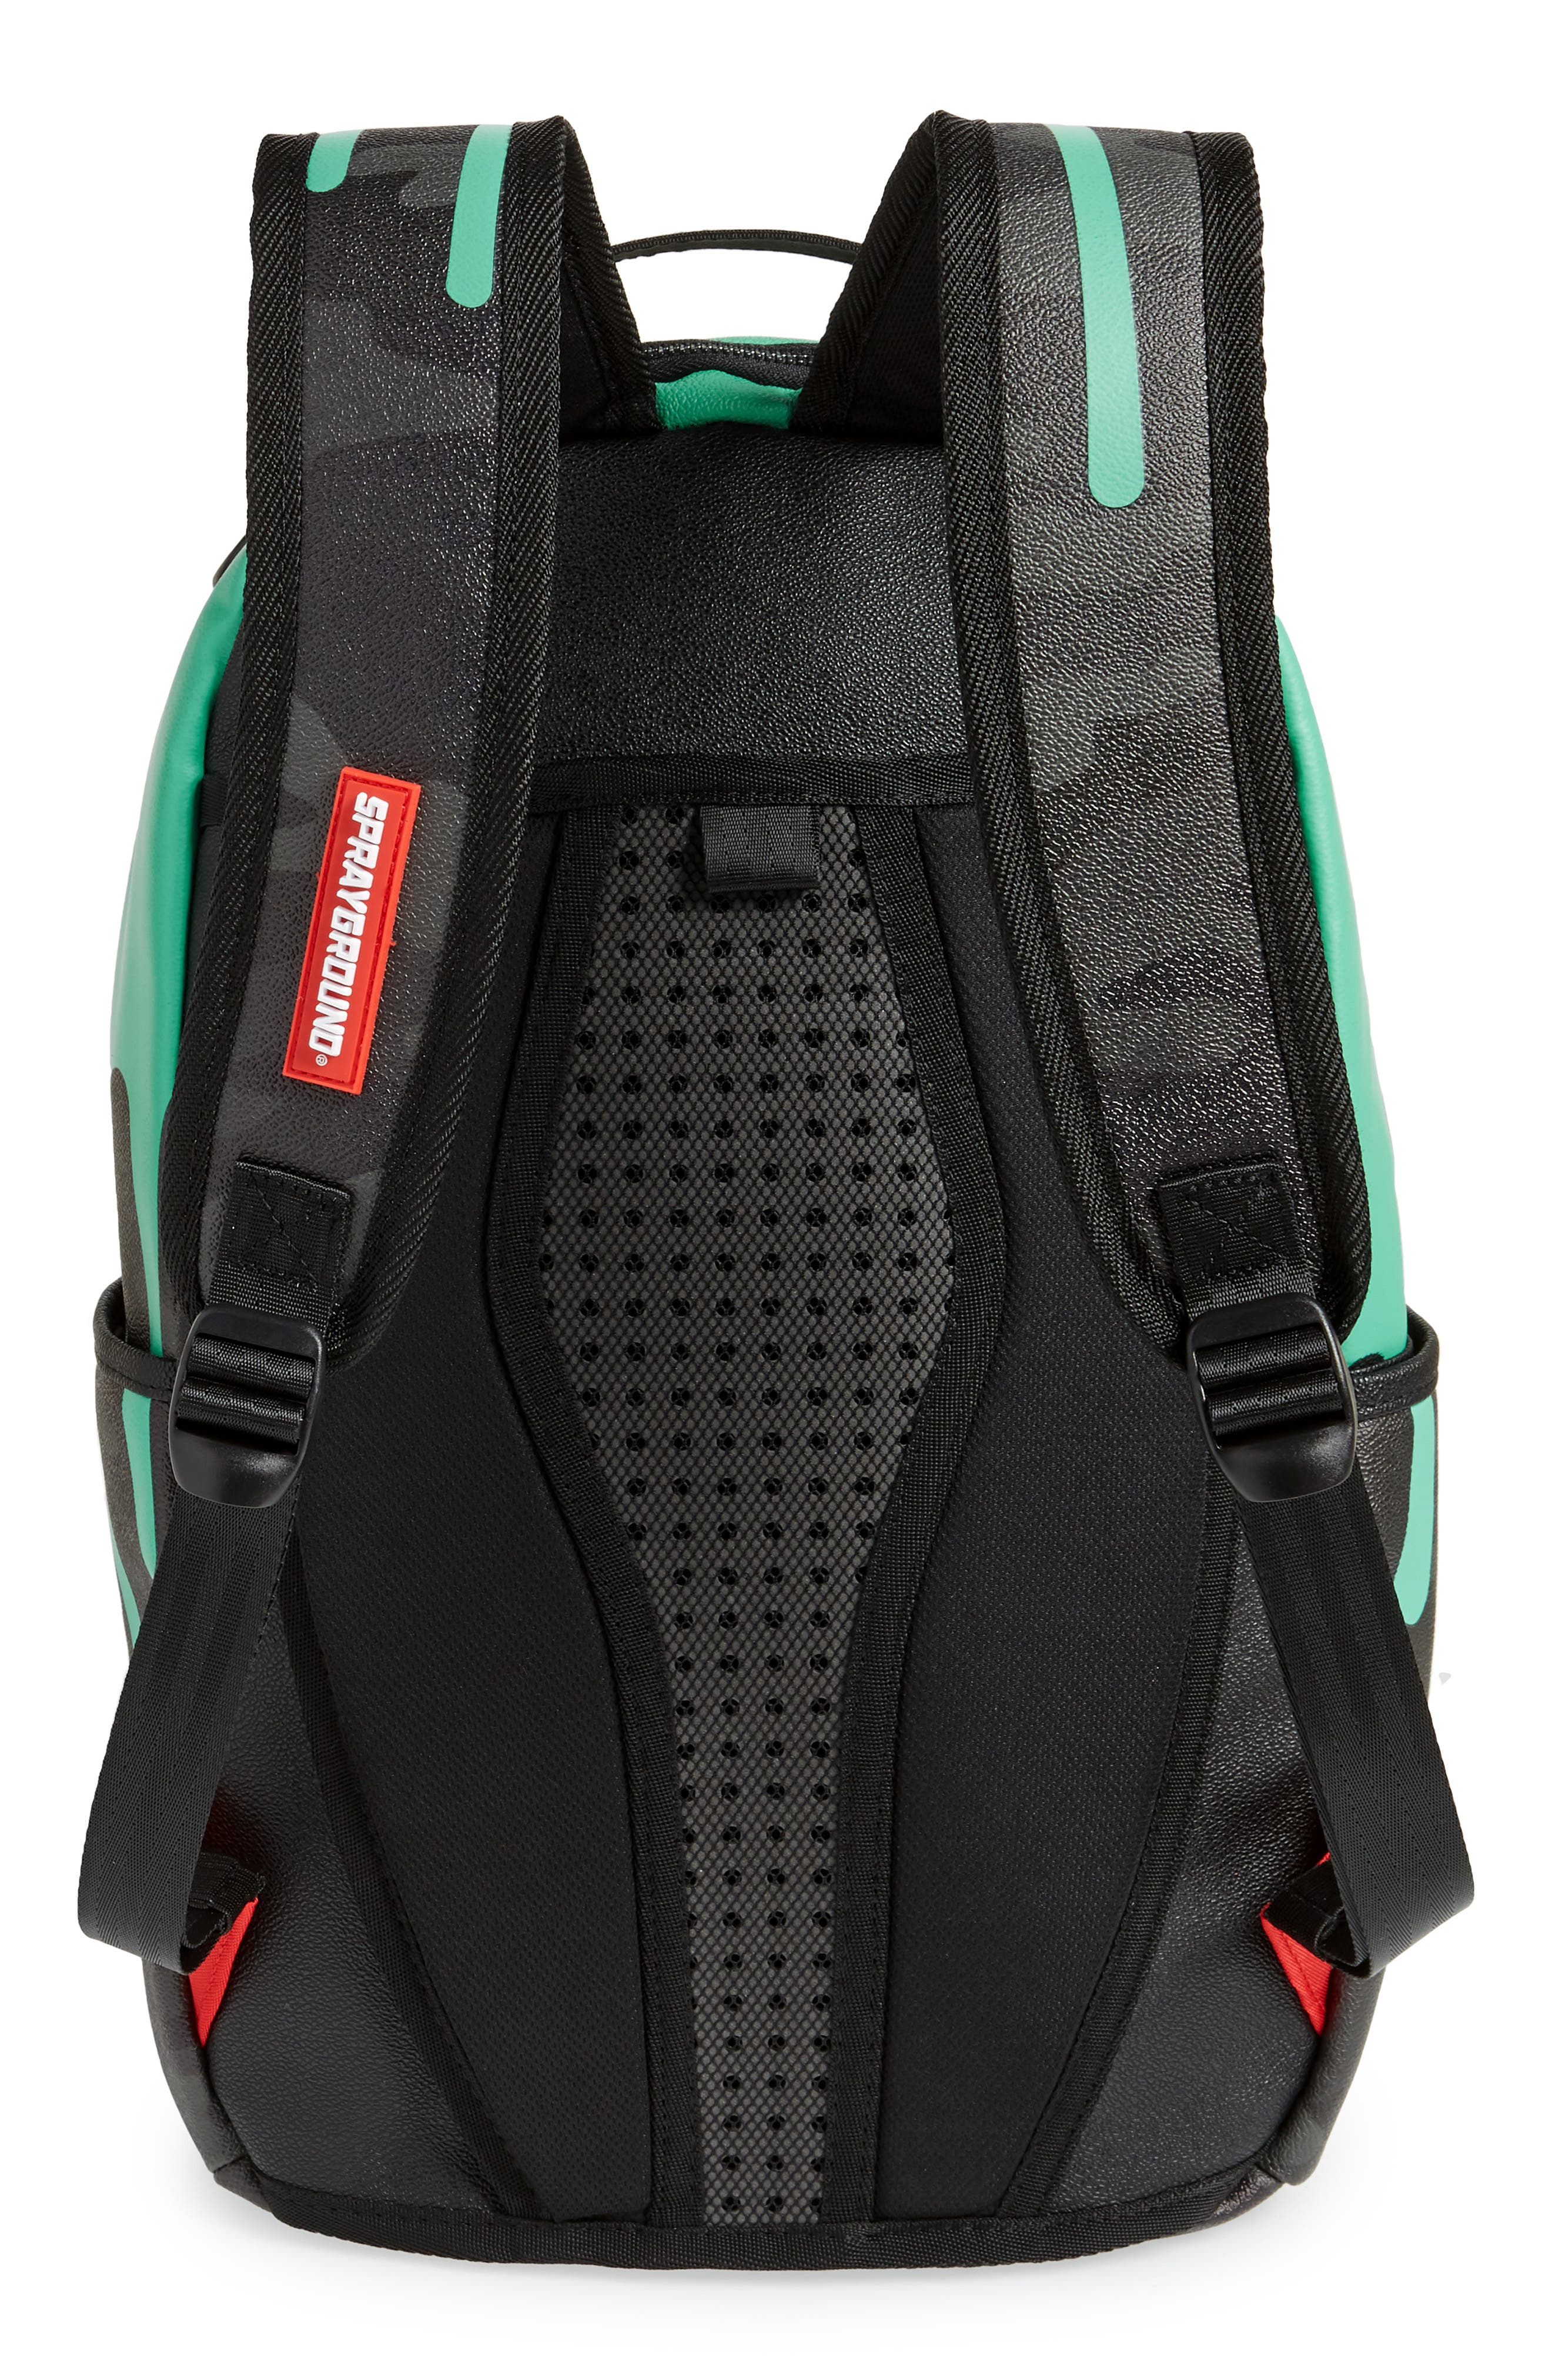 Tiff Drips Print Backpack,                             Alternate thumbnail 3, color,                             Camo/ Teal